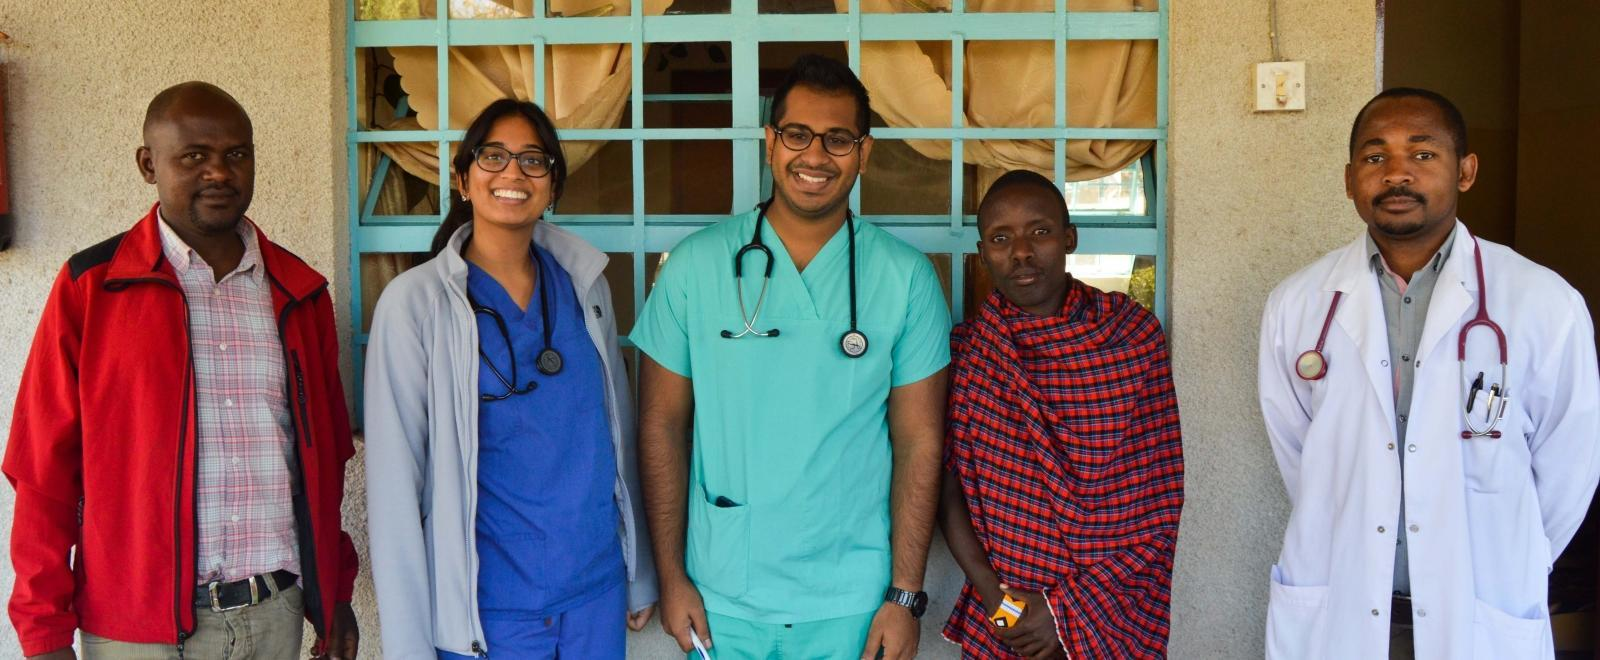 Local medical staff with a group of Projects Abroad Medicine interns doing work experience placements in Tanzania.